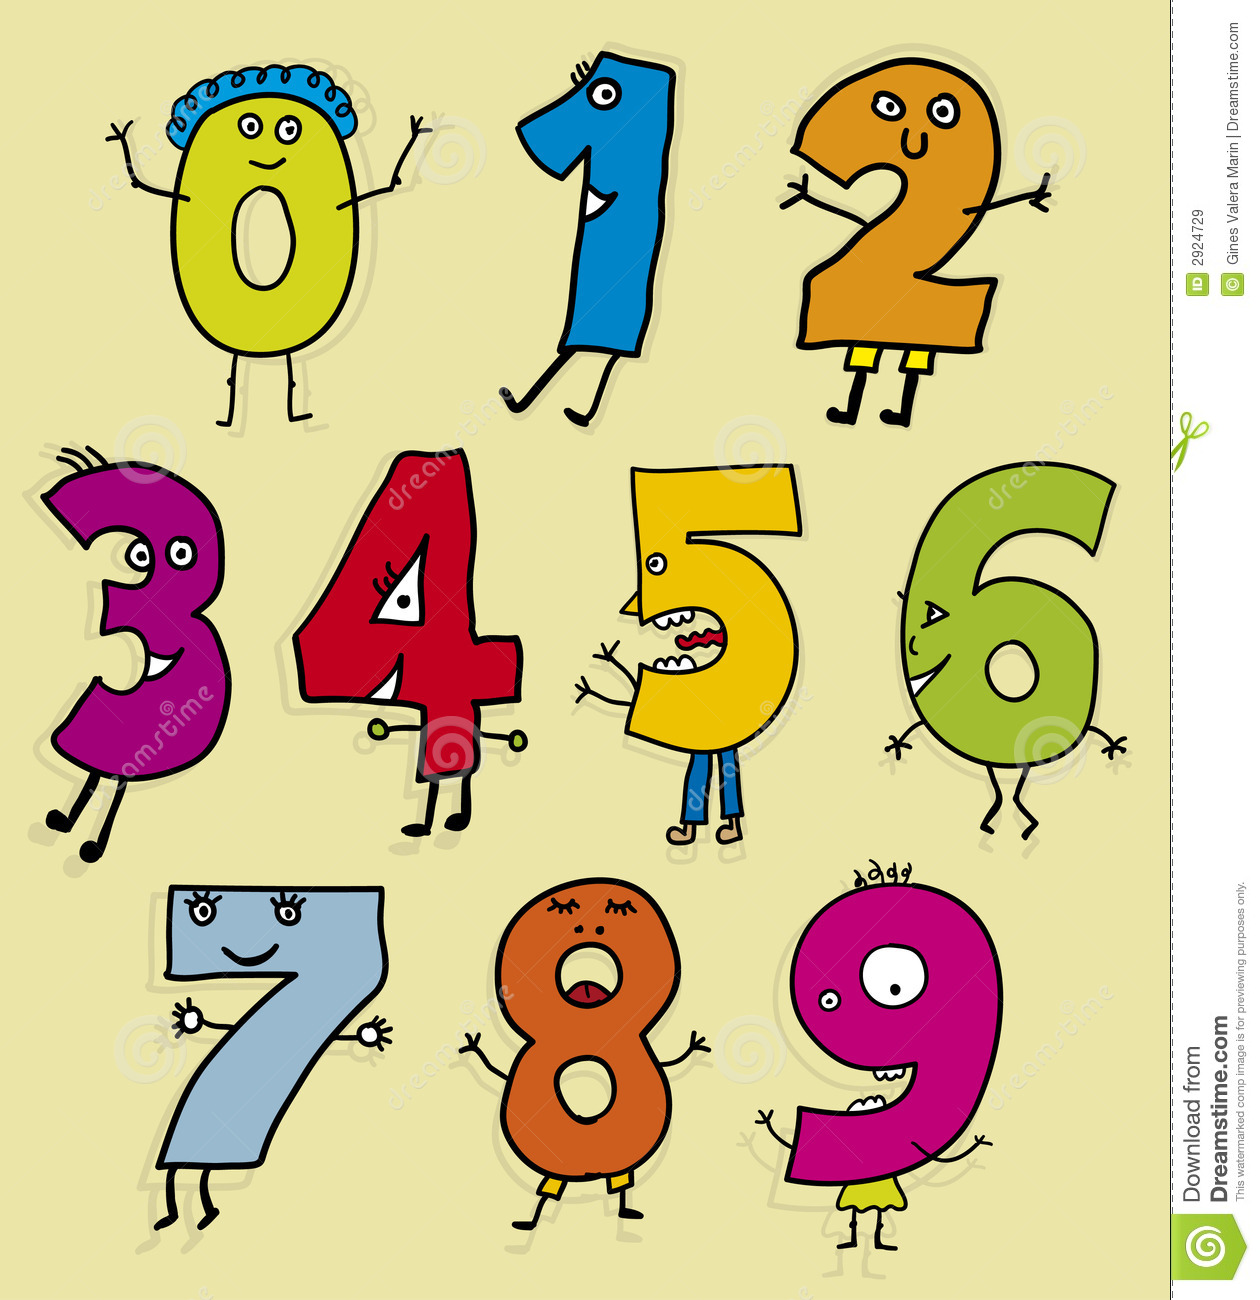 Clipart numbers clip art freeuse library Cute Number Clipart - Clipart Kid clip art freeuse library